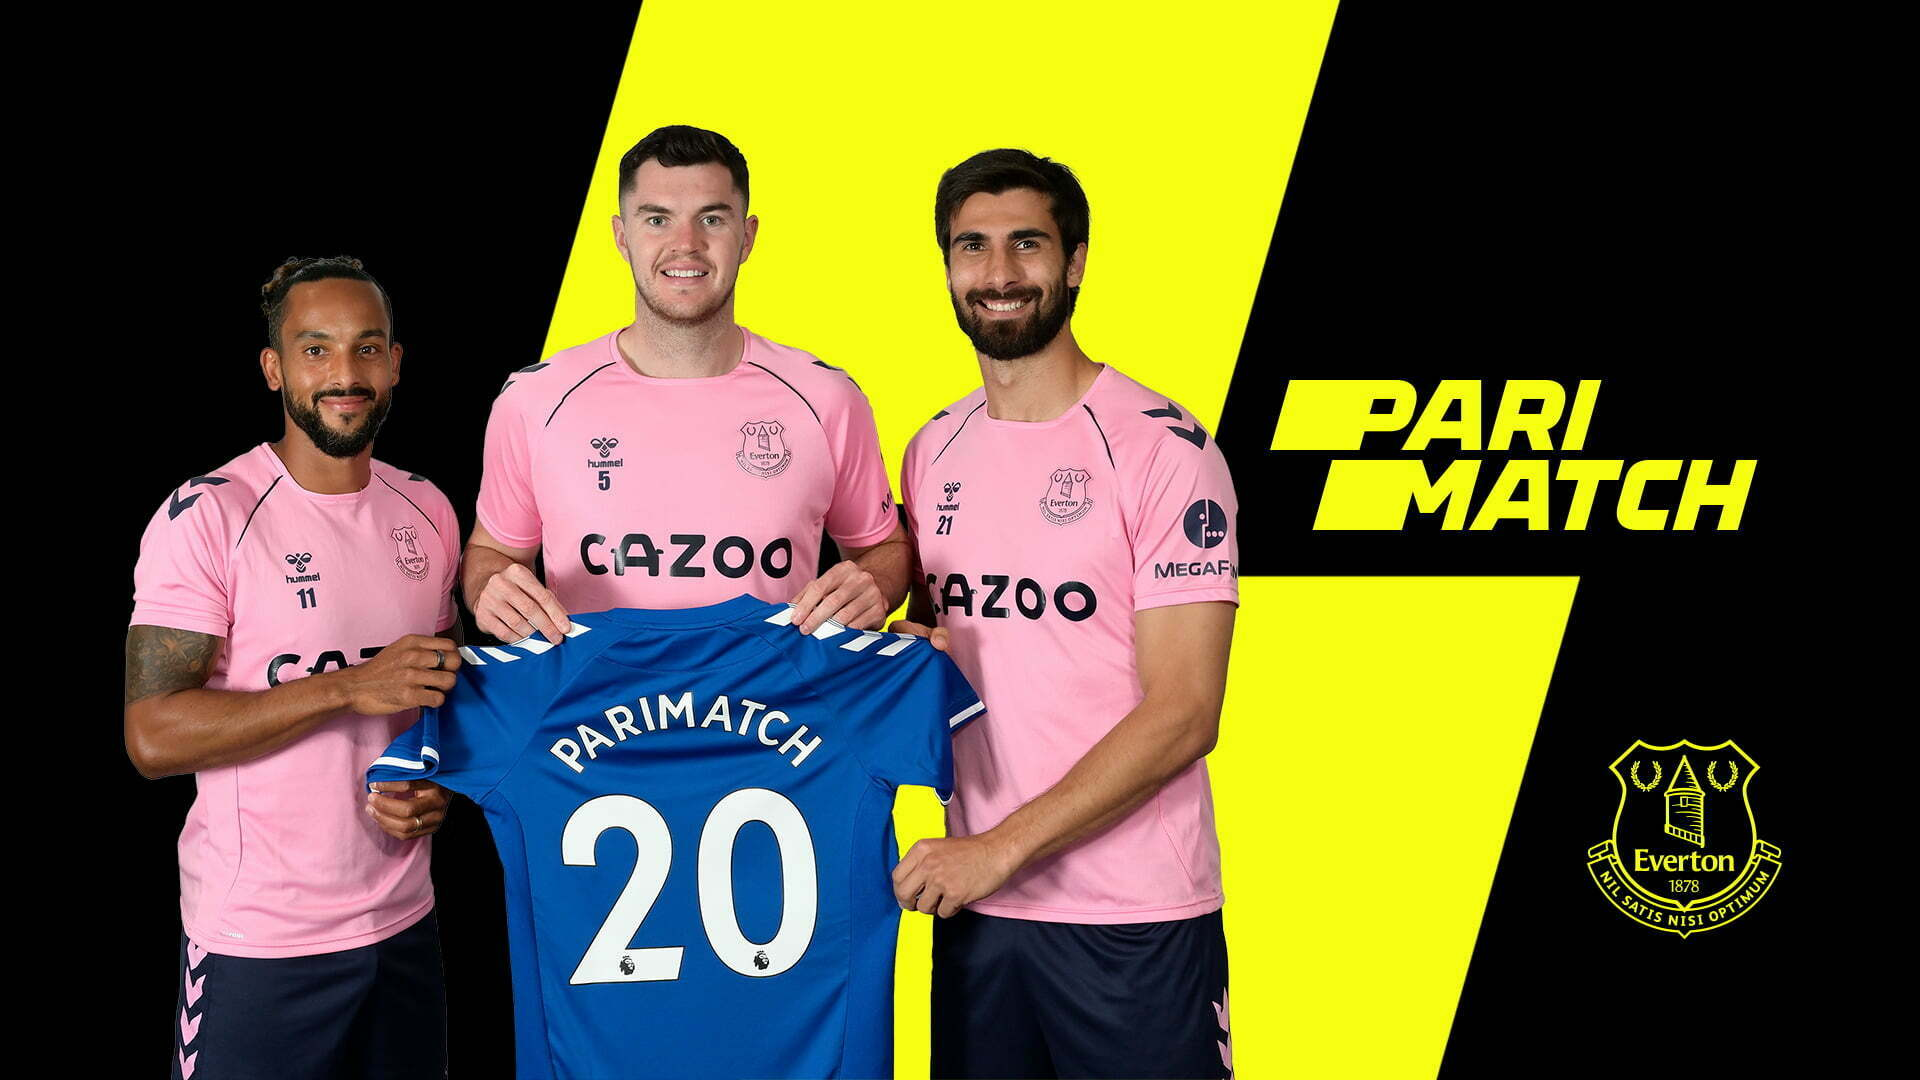 Parimatch Becomes Official Partner Of Everton FC